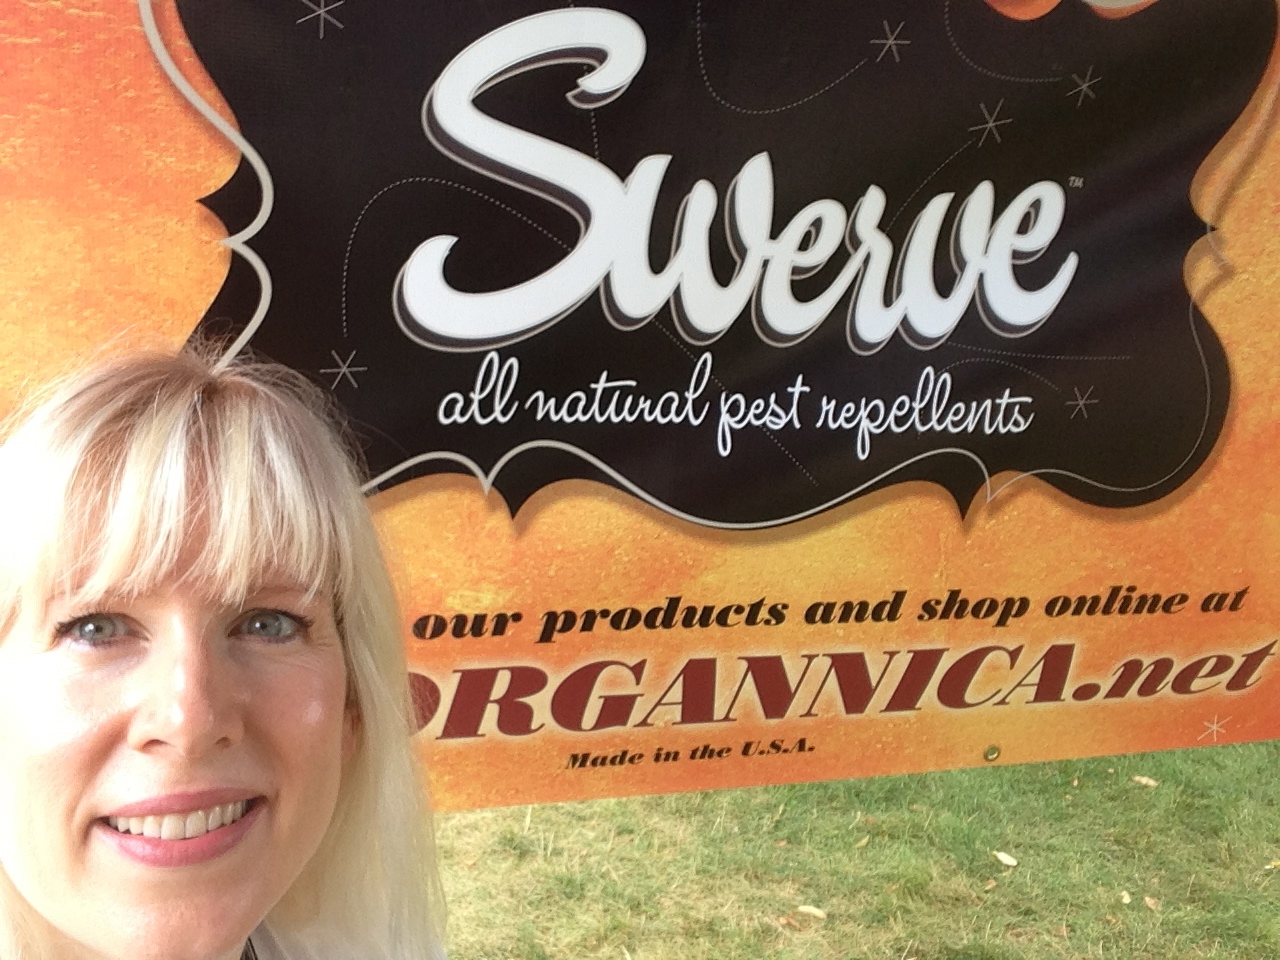 Owner & Inventor, Jennifer Angone at a local farmers market in Illinois